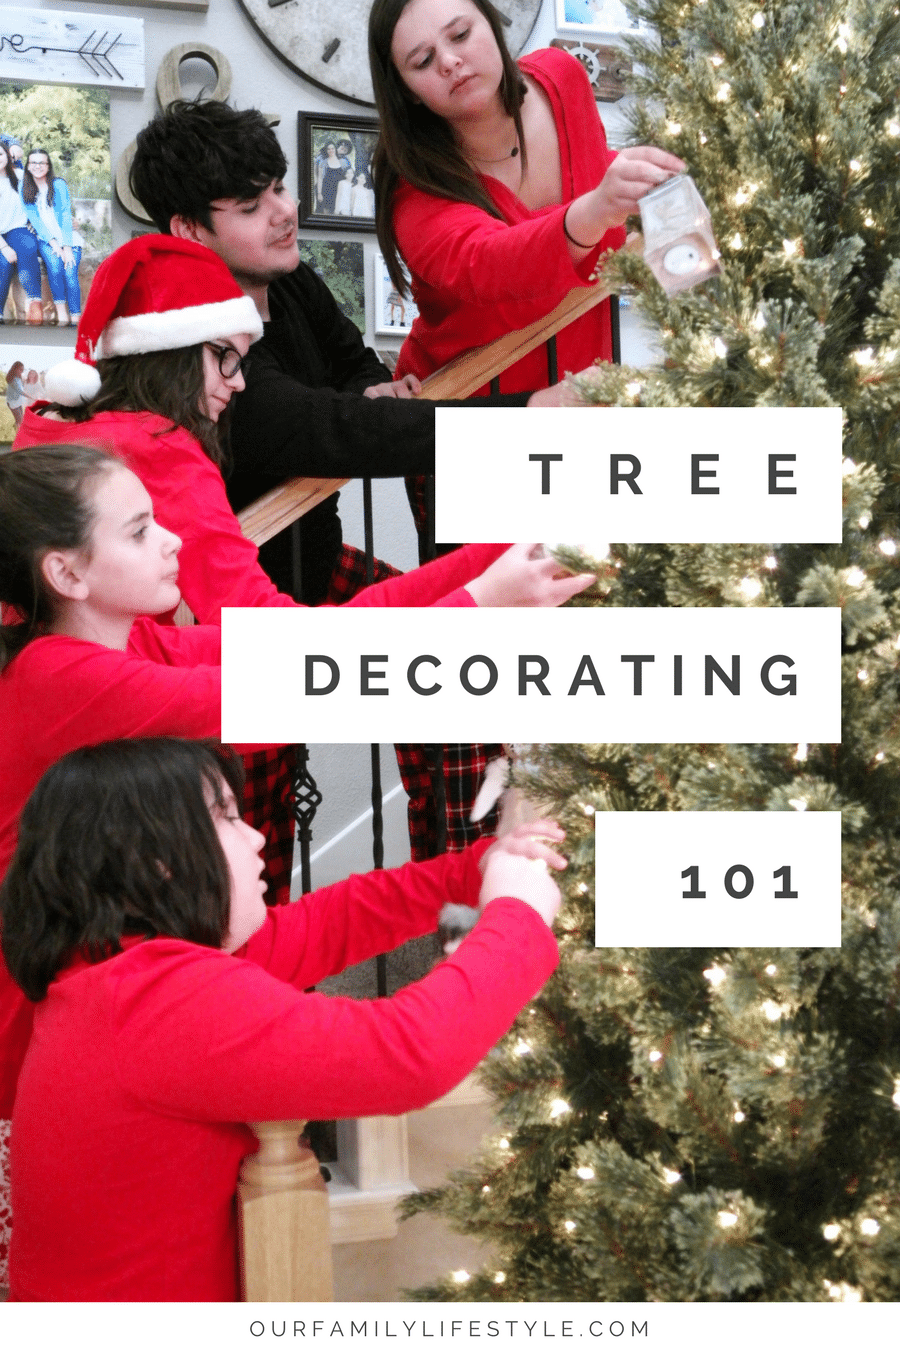 Tree Decorating 101 with Pier 1 Imports